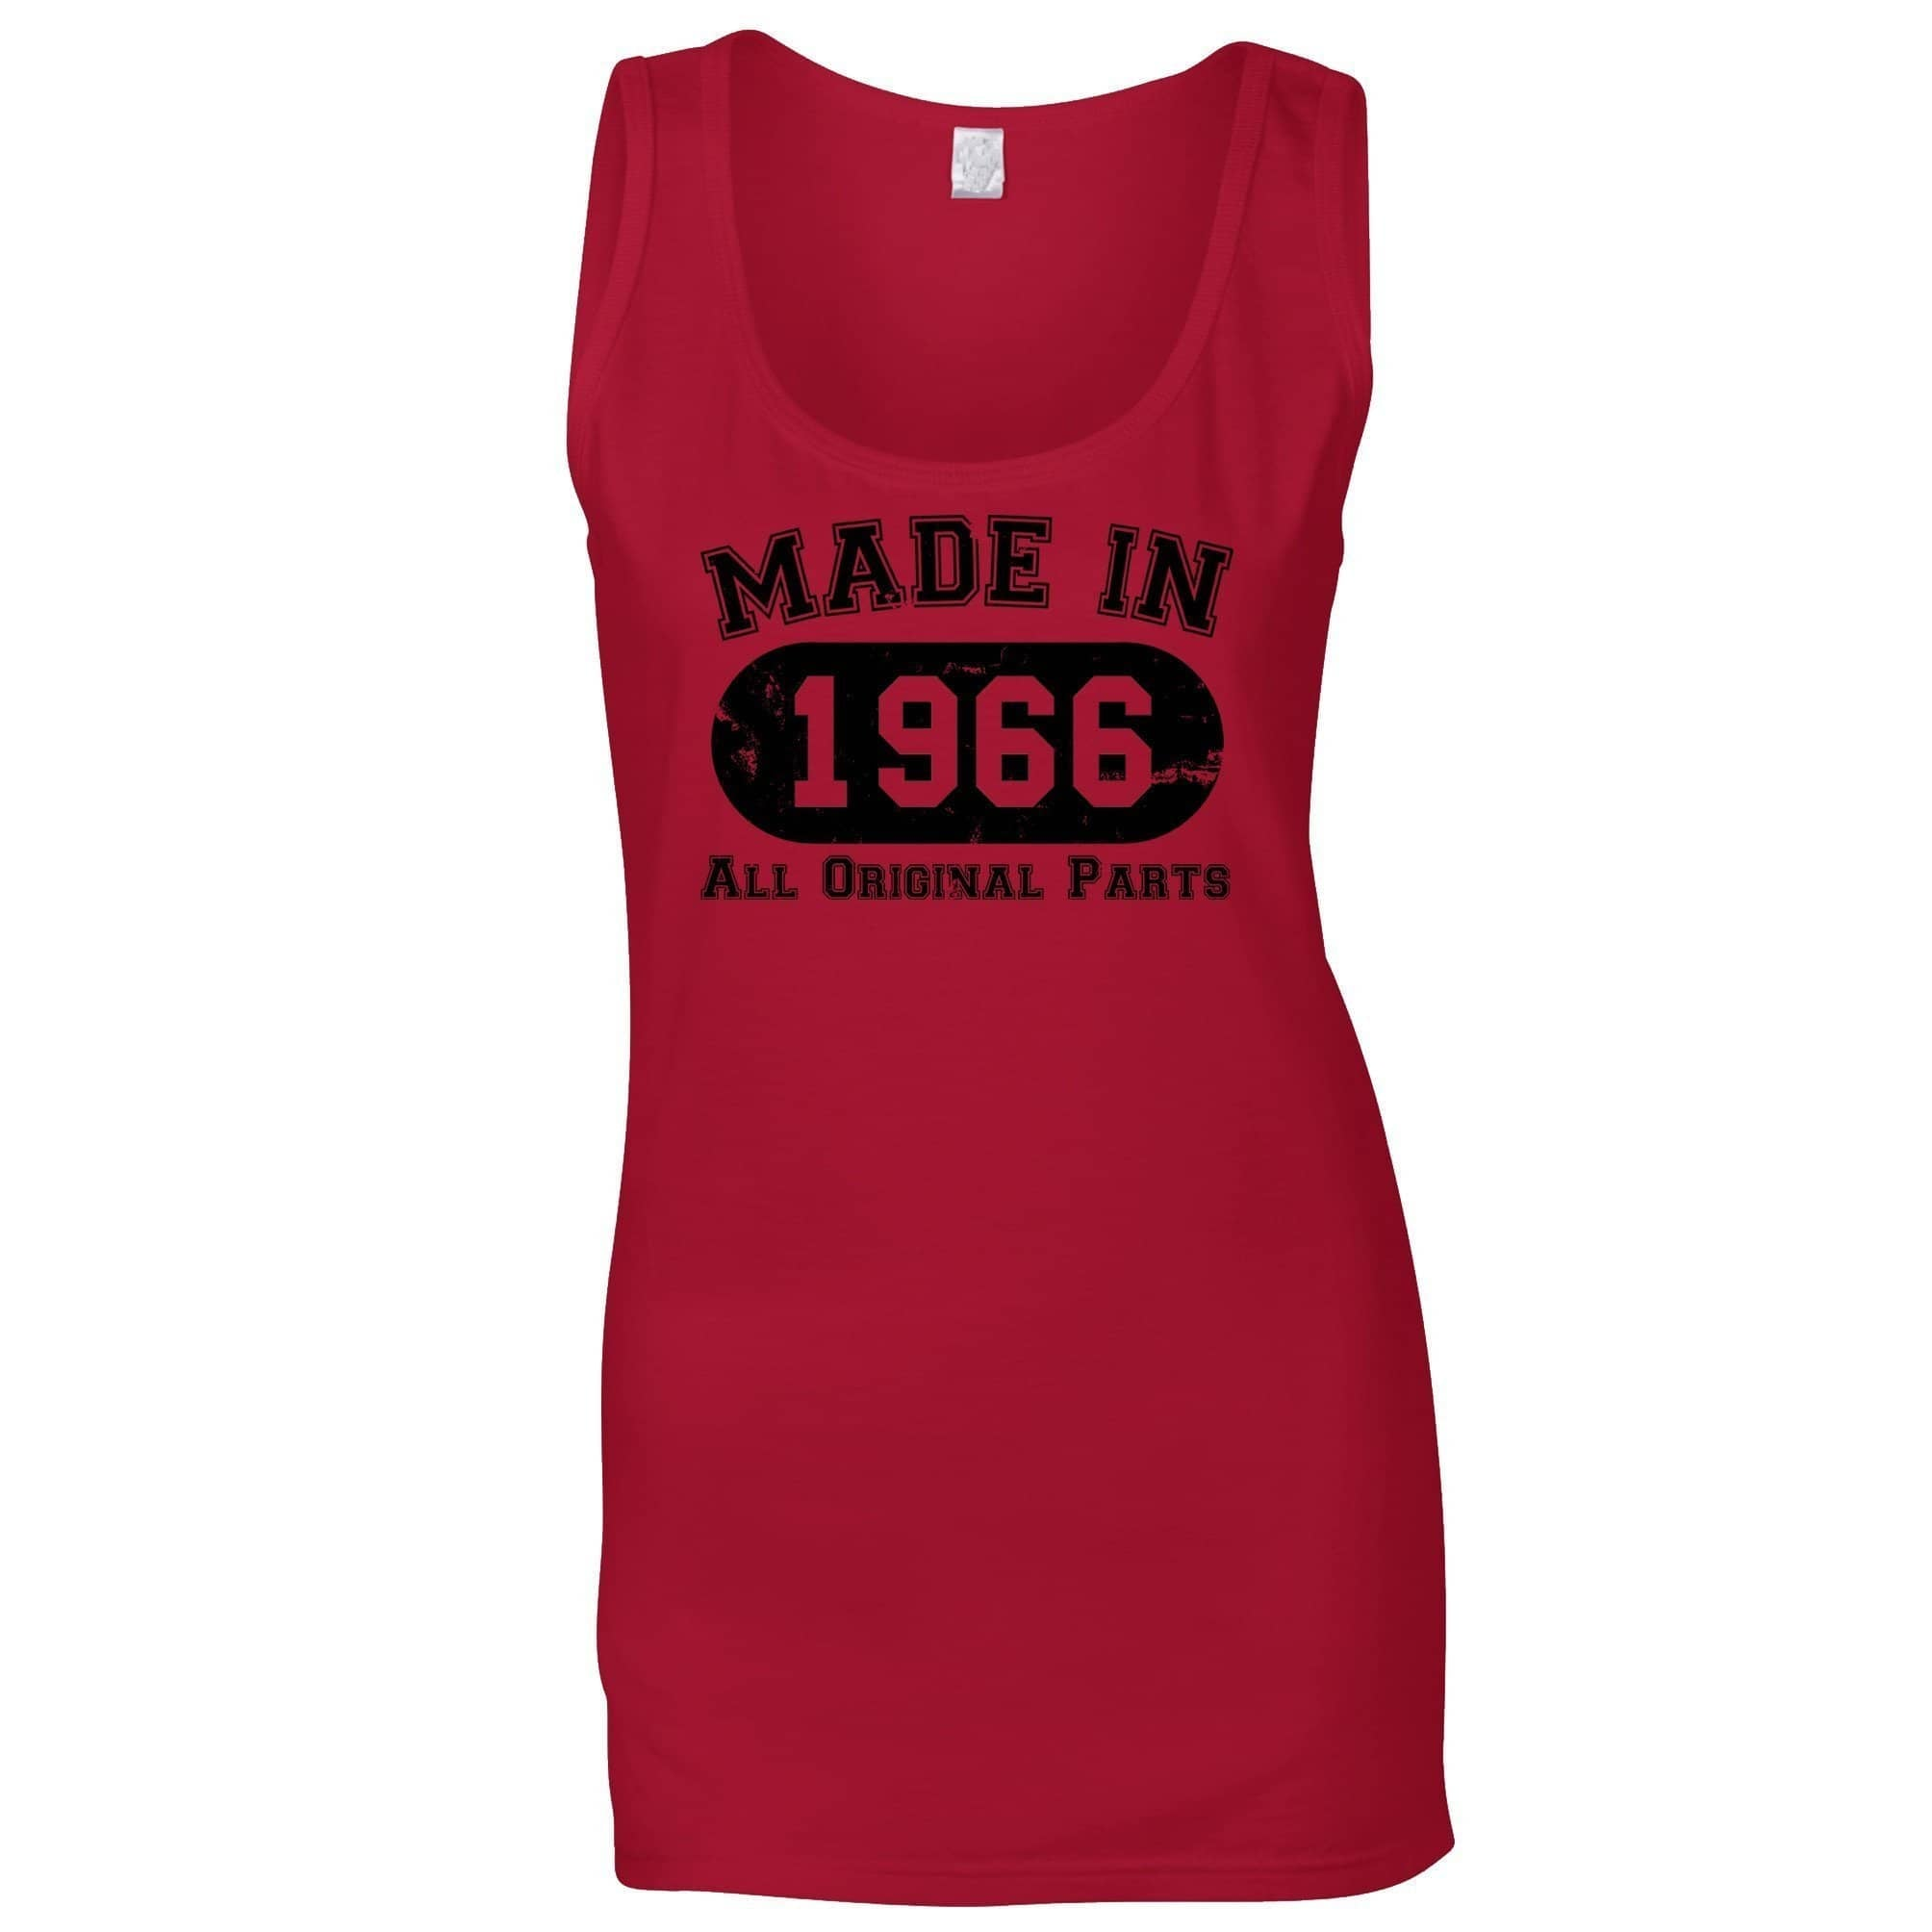 Made in 1966 All Original Parts Womens Vest [Distressed]